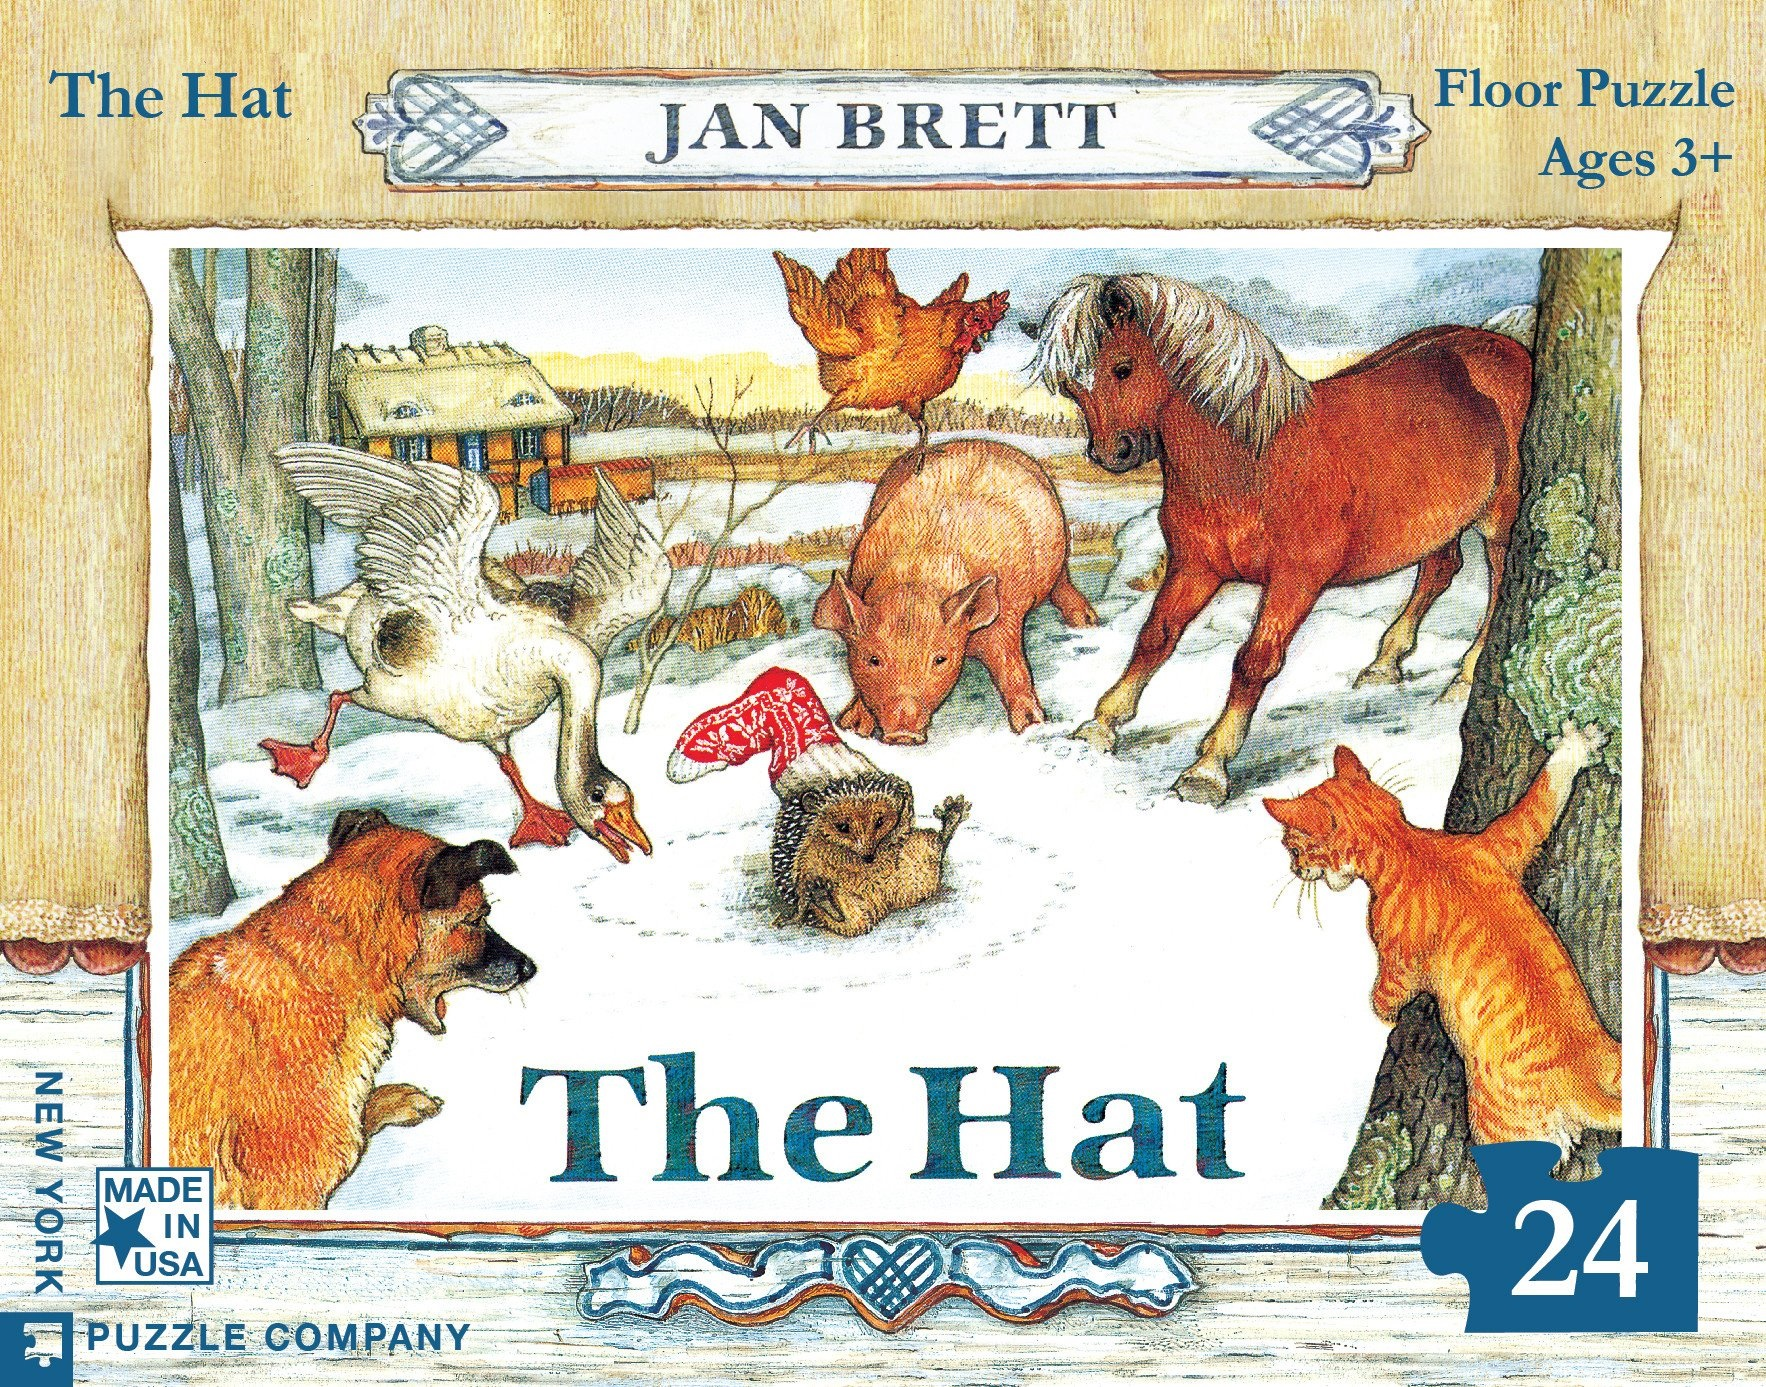 The Hat Puzzle